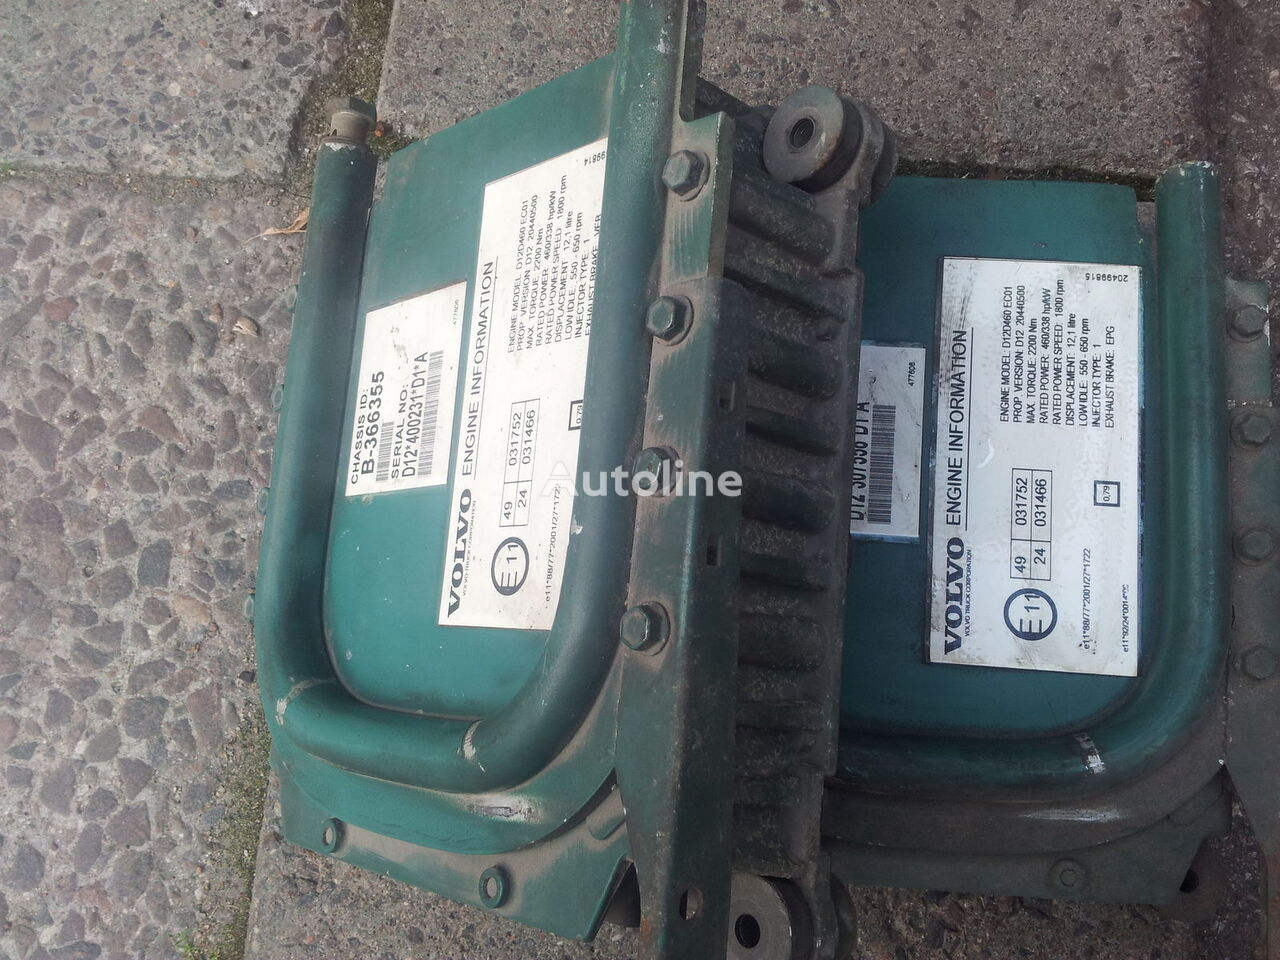 блок за управление VOLVO , EURO3 D12D, EDC, ECU, D12D420, D12D460, D12D380, engine co за влекач VOLVO FH12